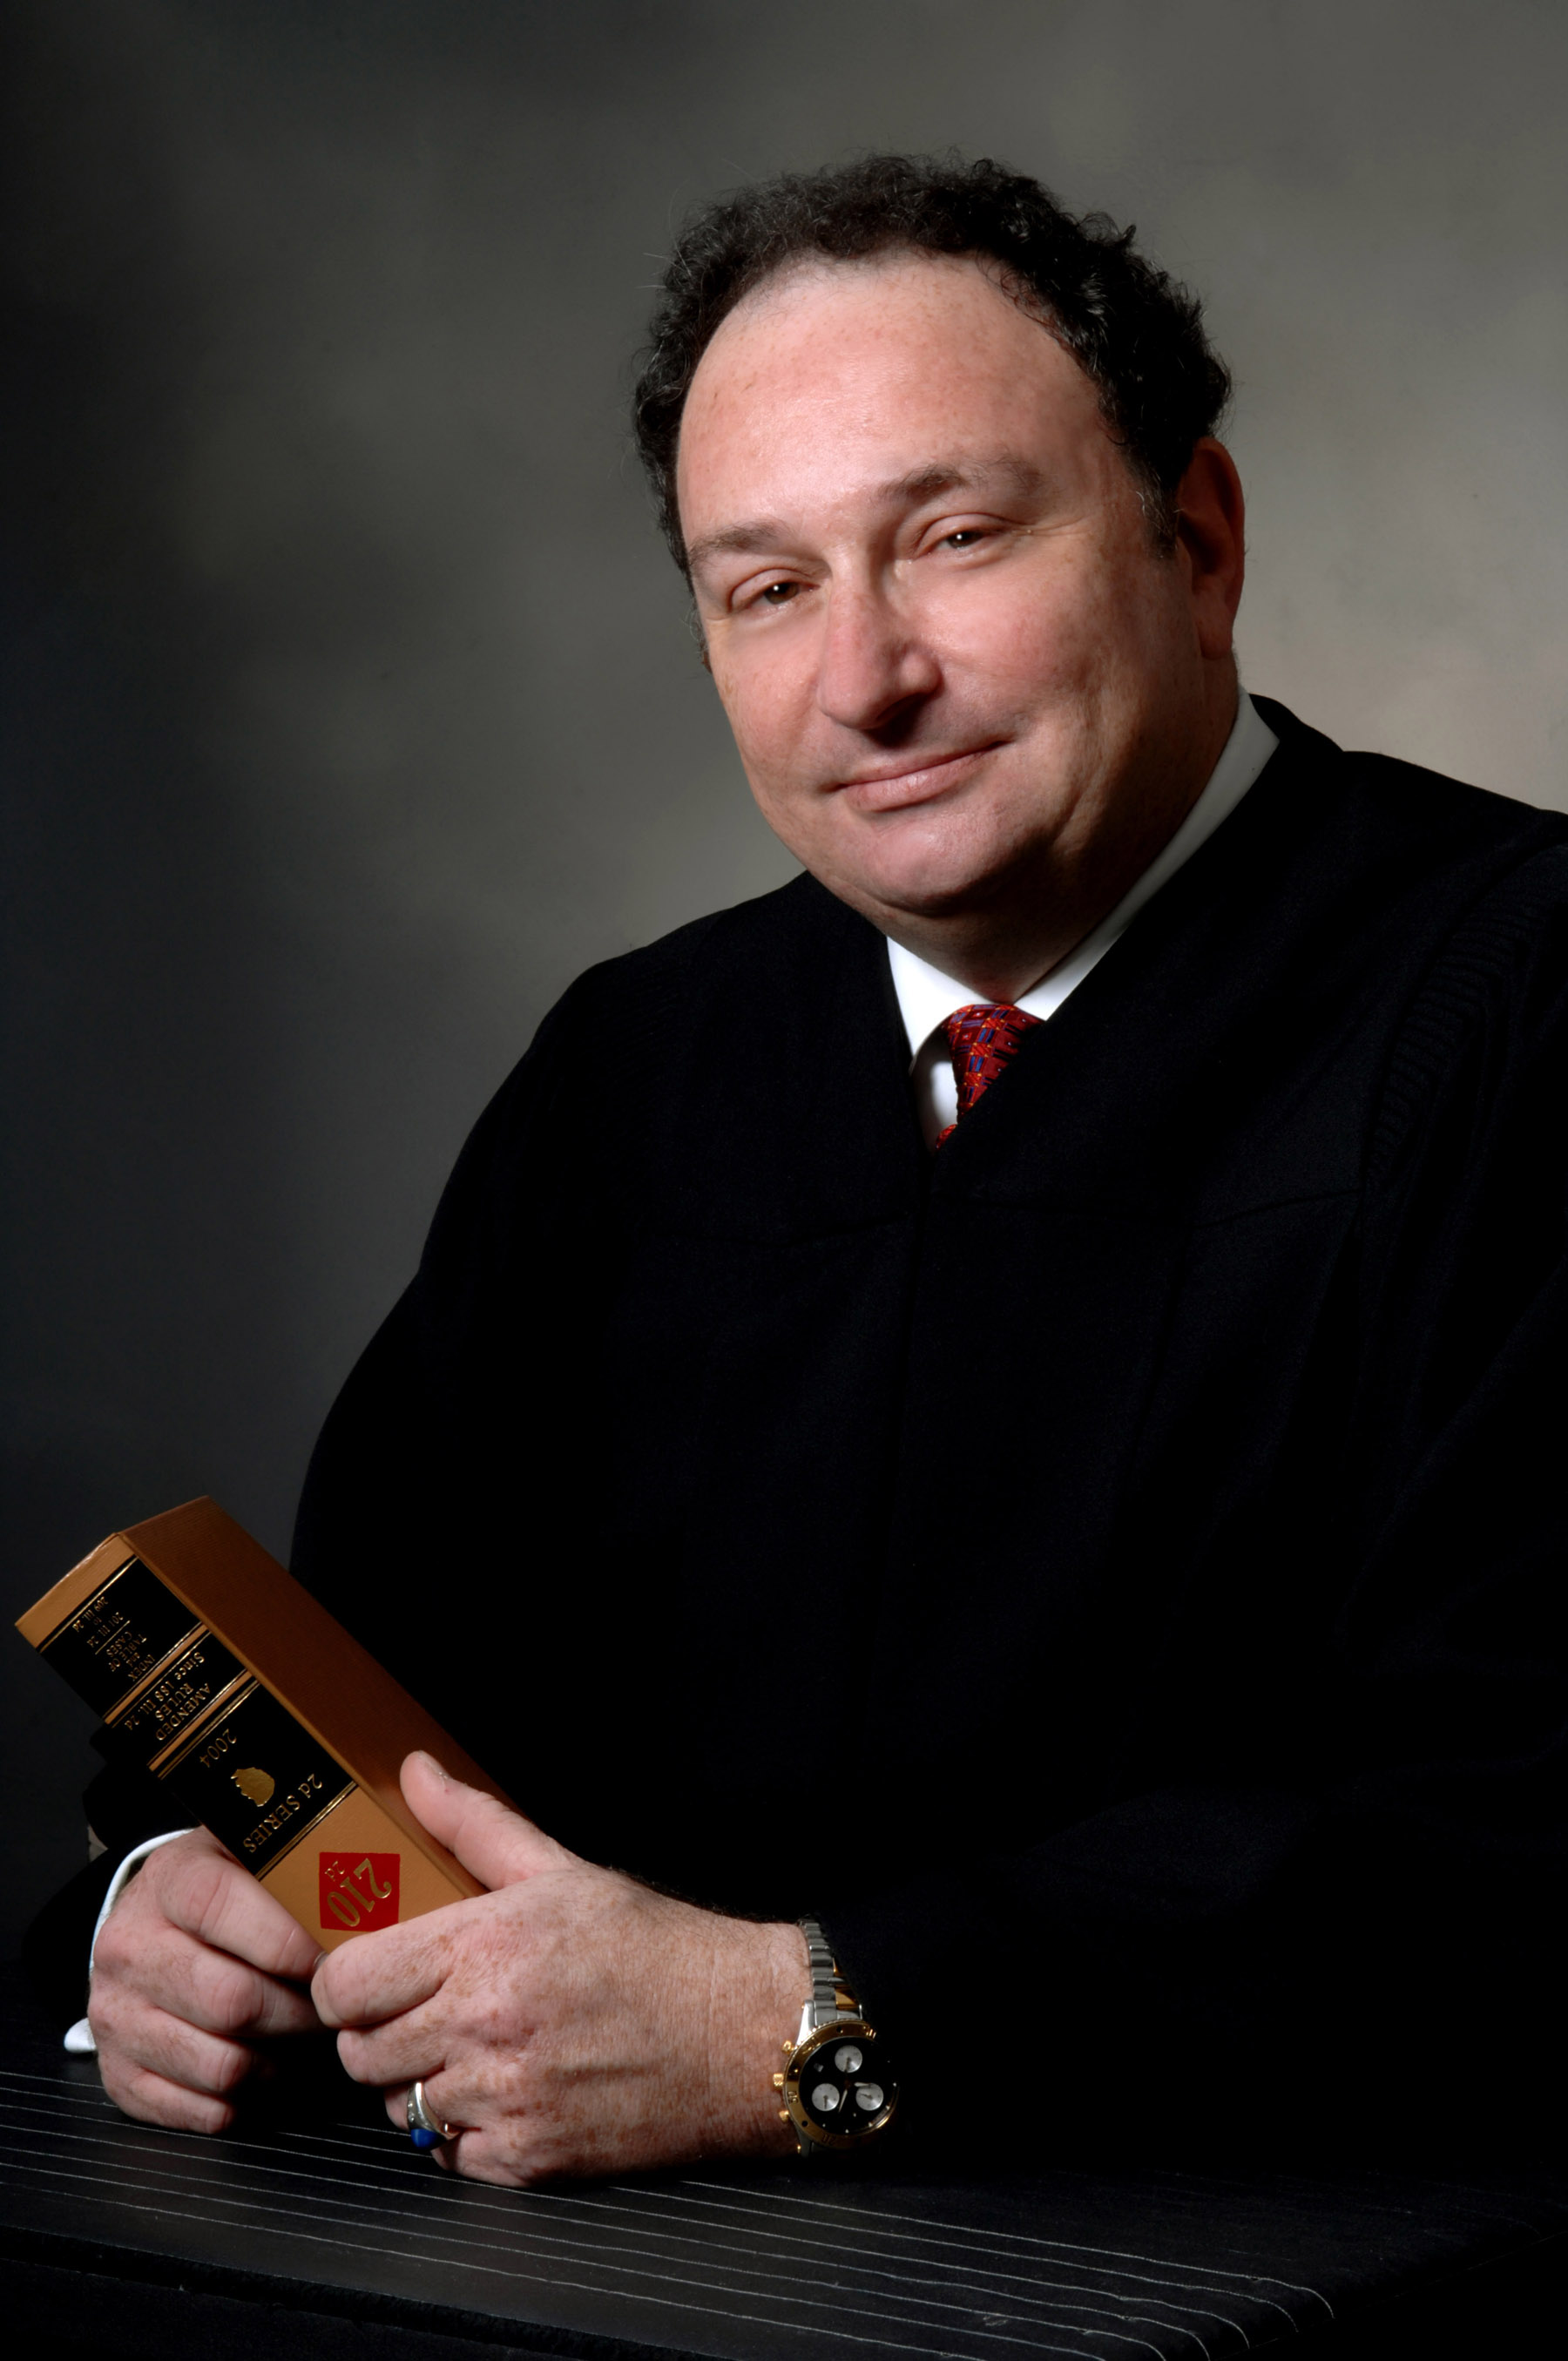 picture of judge hyman